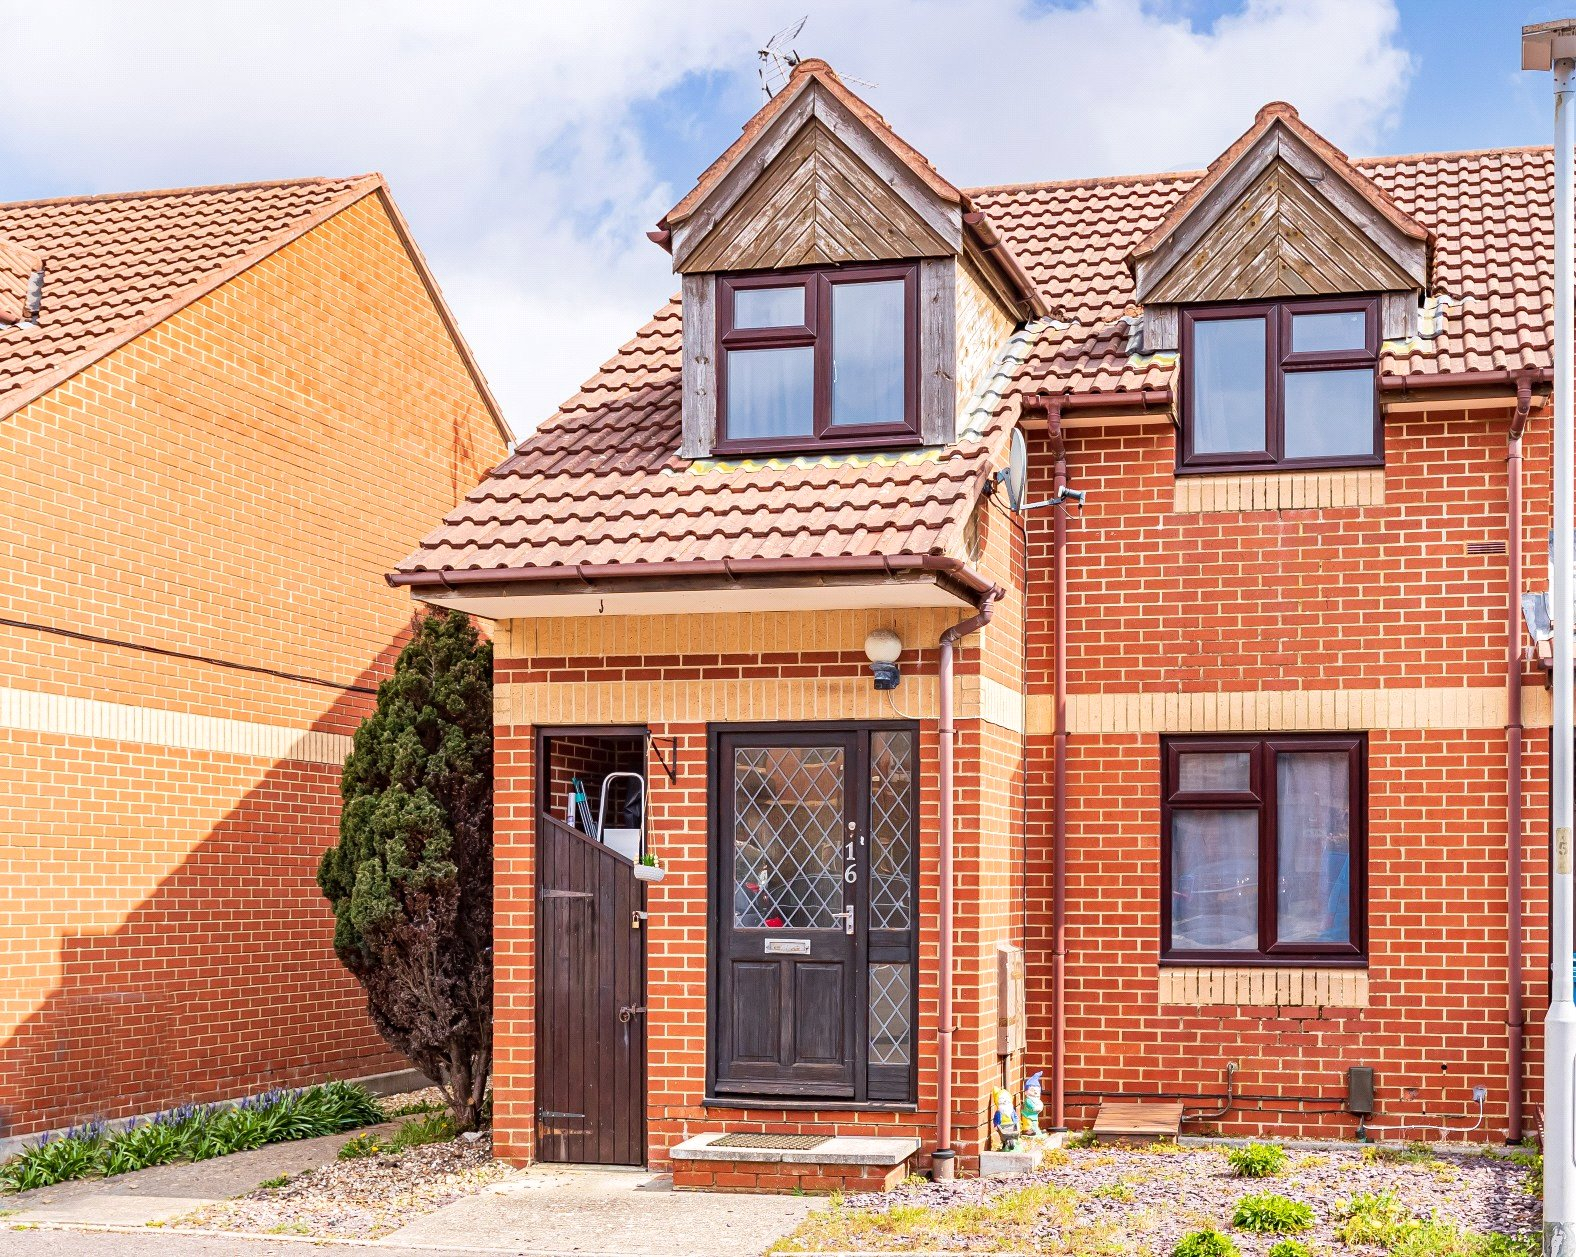 2 bed house for sale in Sixpenny Close, Parkstone, BH12